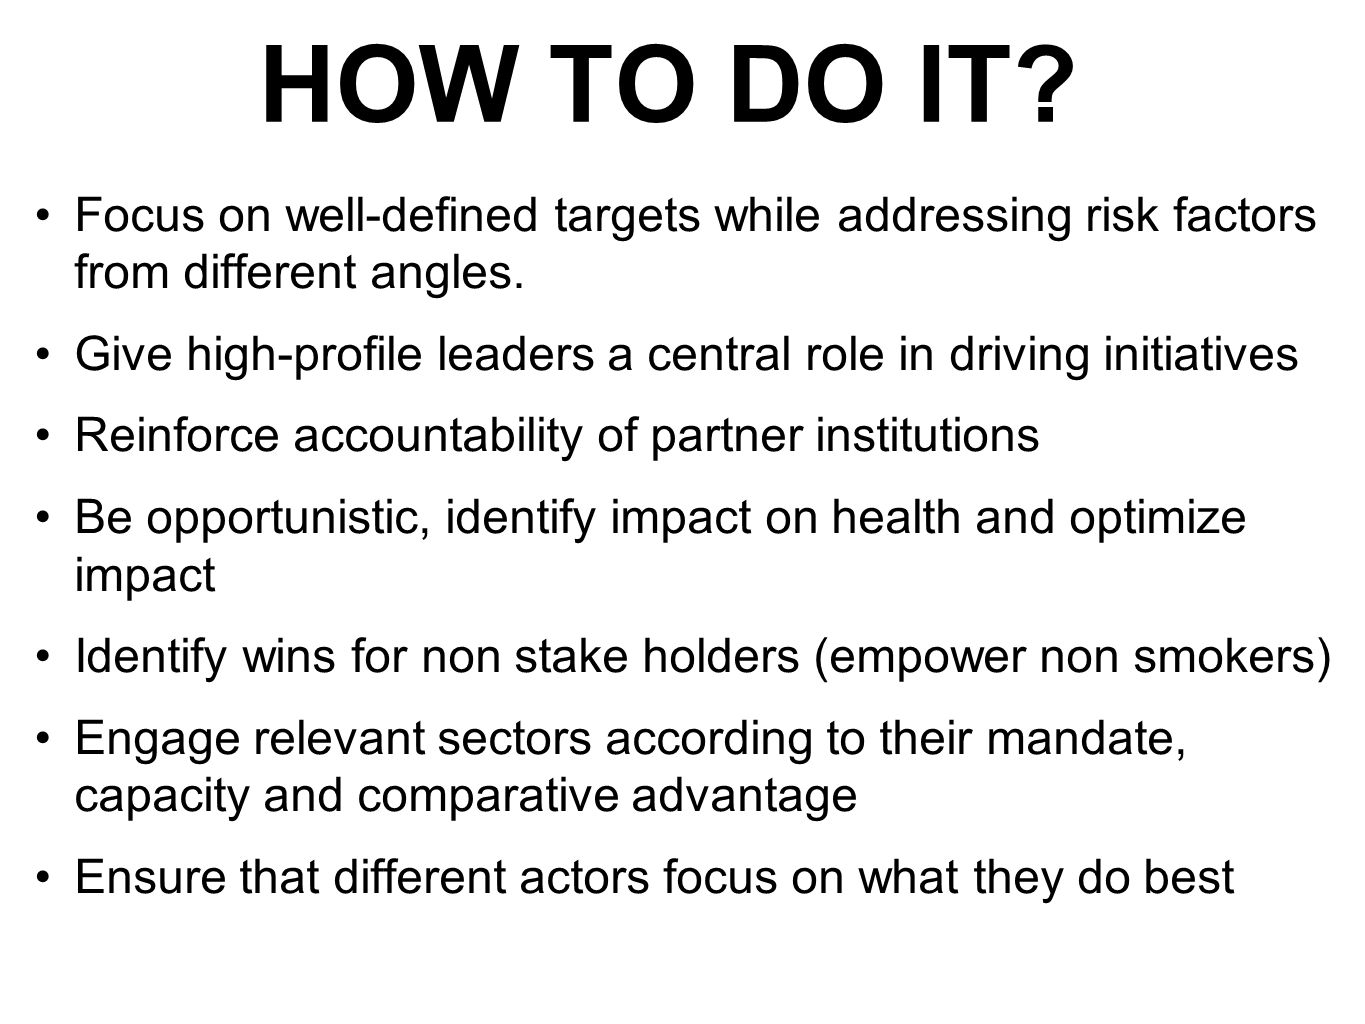 HOW TO DO IT Focus on well-defined targets while addressing risk factors from different angles.